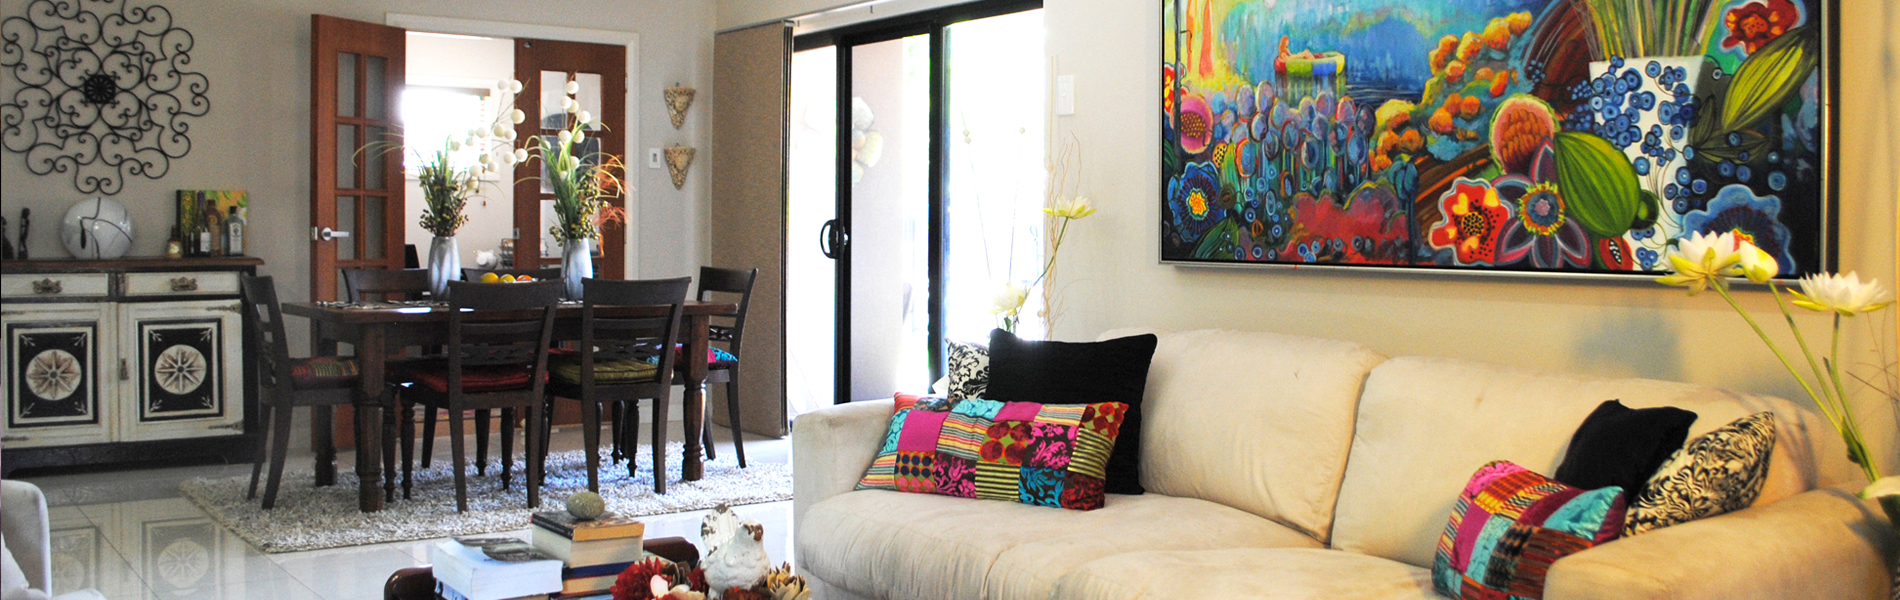 Contact_Tailored_Artworks_Brisbane_Artists_who_Decorate